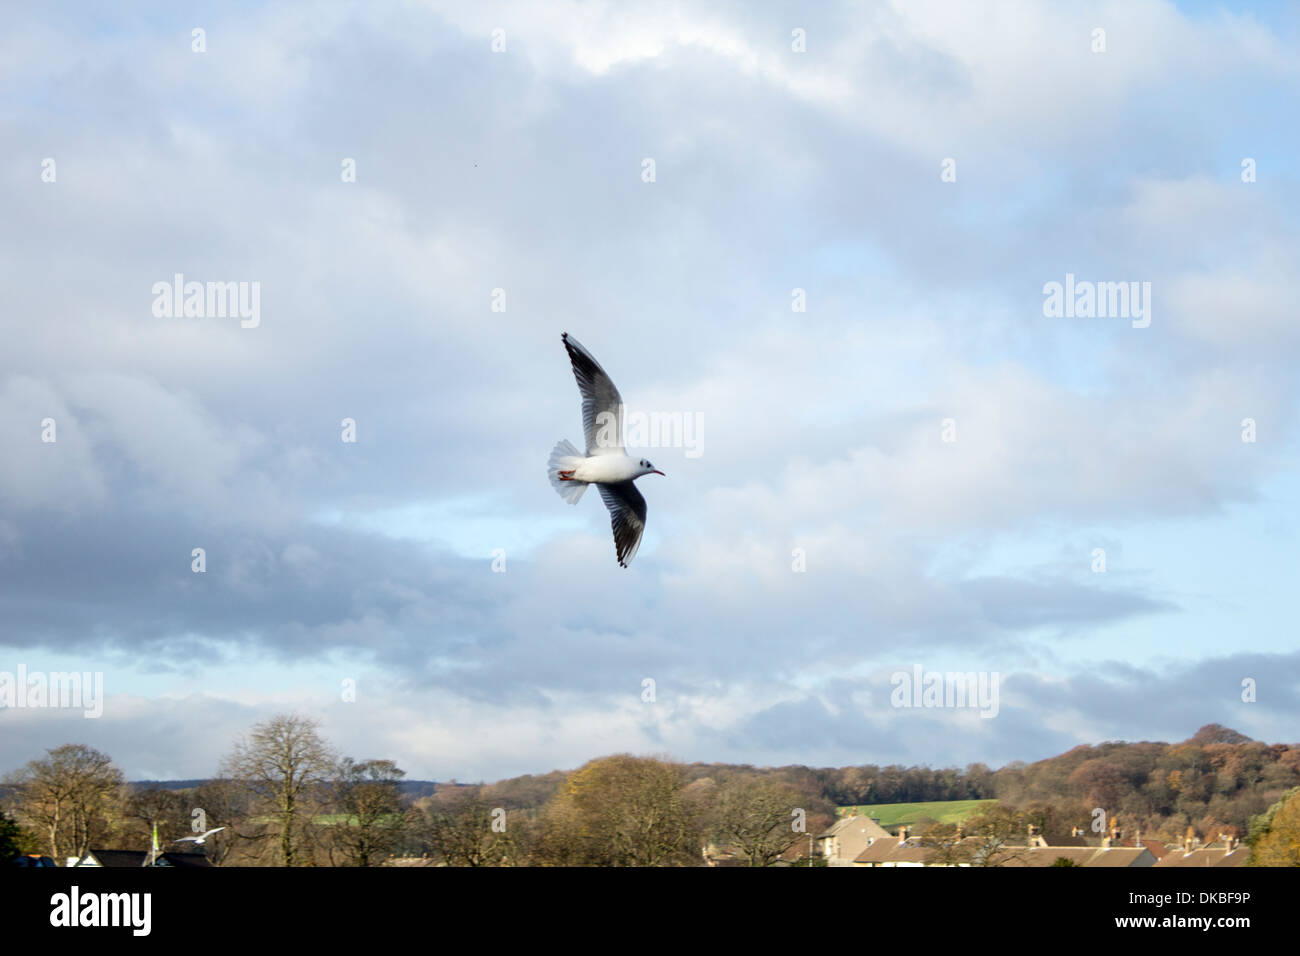 Segal soaring flight over the beauty of Yorkshire Autumn sky Flying above Robert's Park in Saltaire - Stock Image